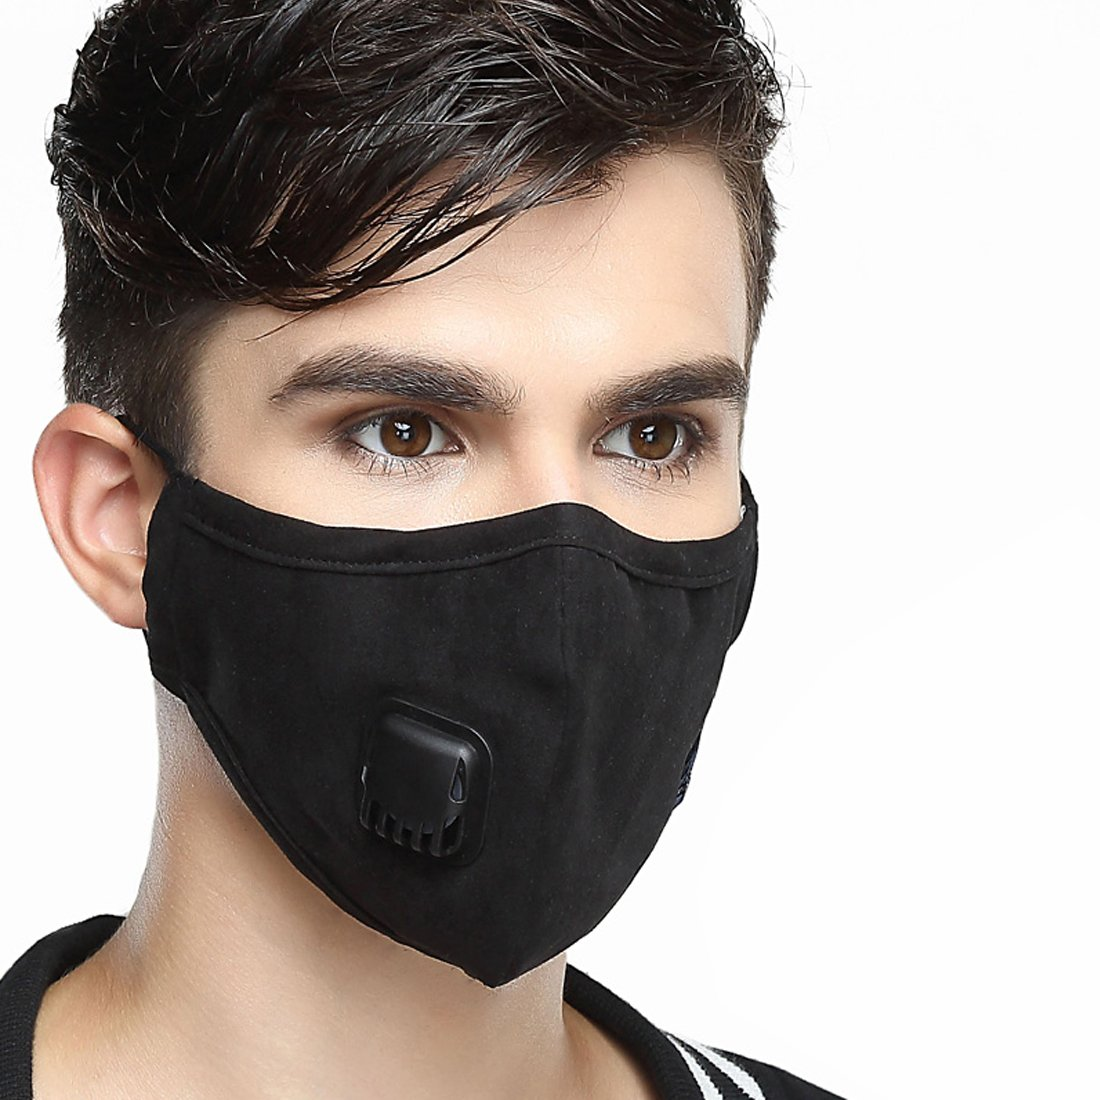 Healthyair Masks PM 2.5 Anti Pollution Mask with Valve Pynogeez Washable Dust Respirator Cotton Mouth Masks with Replaceable 5 Layer Filter (Mask + 2 Filters) (Black, Large(Men's))